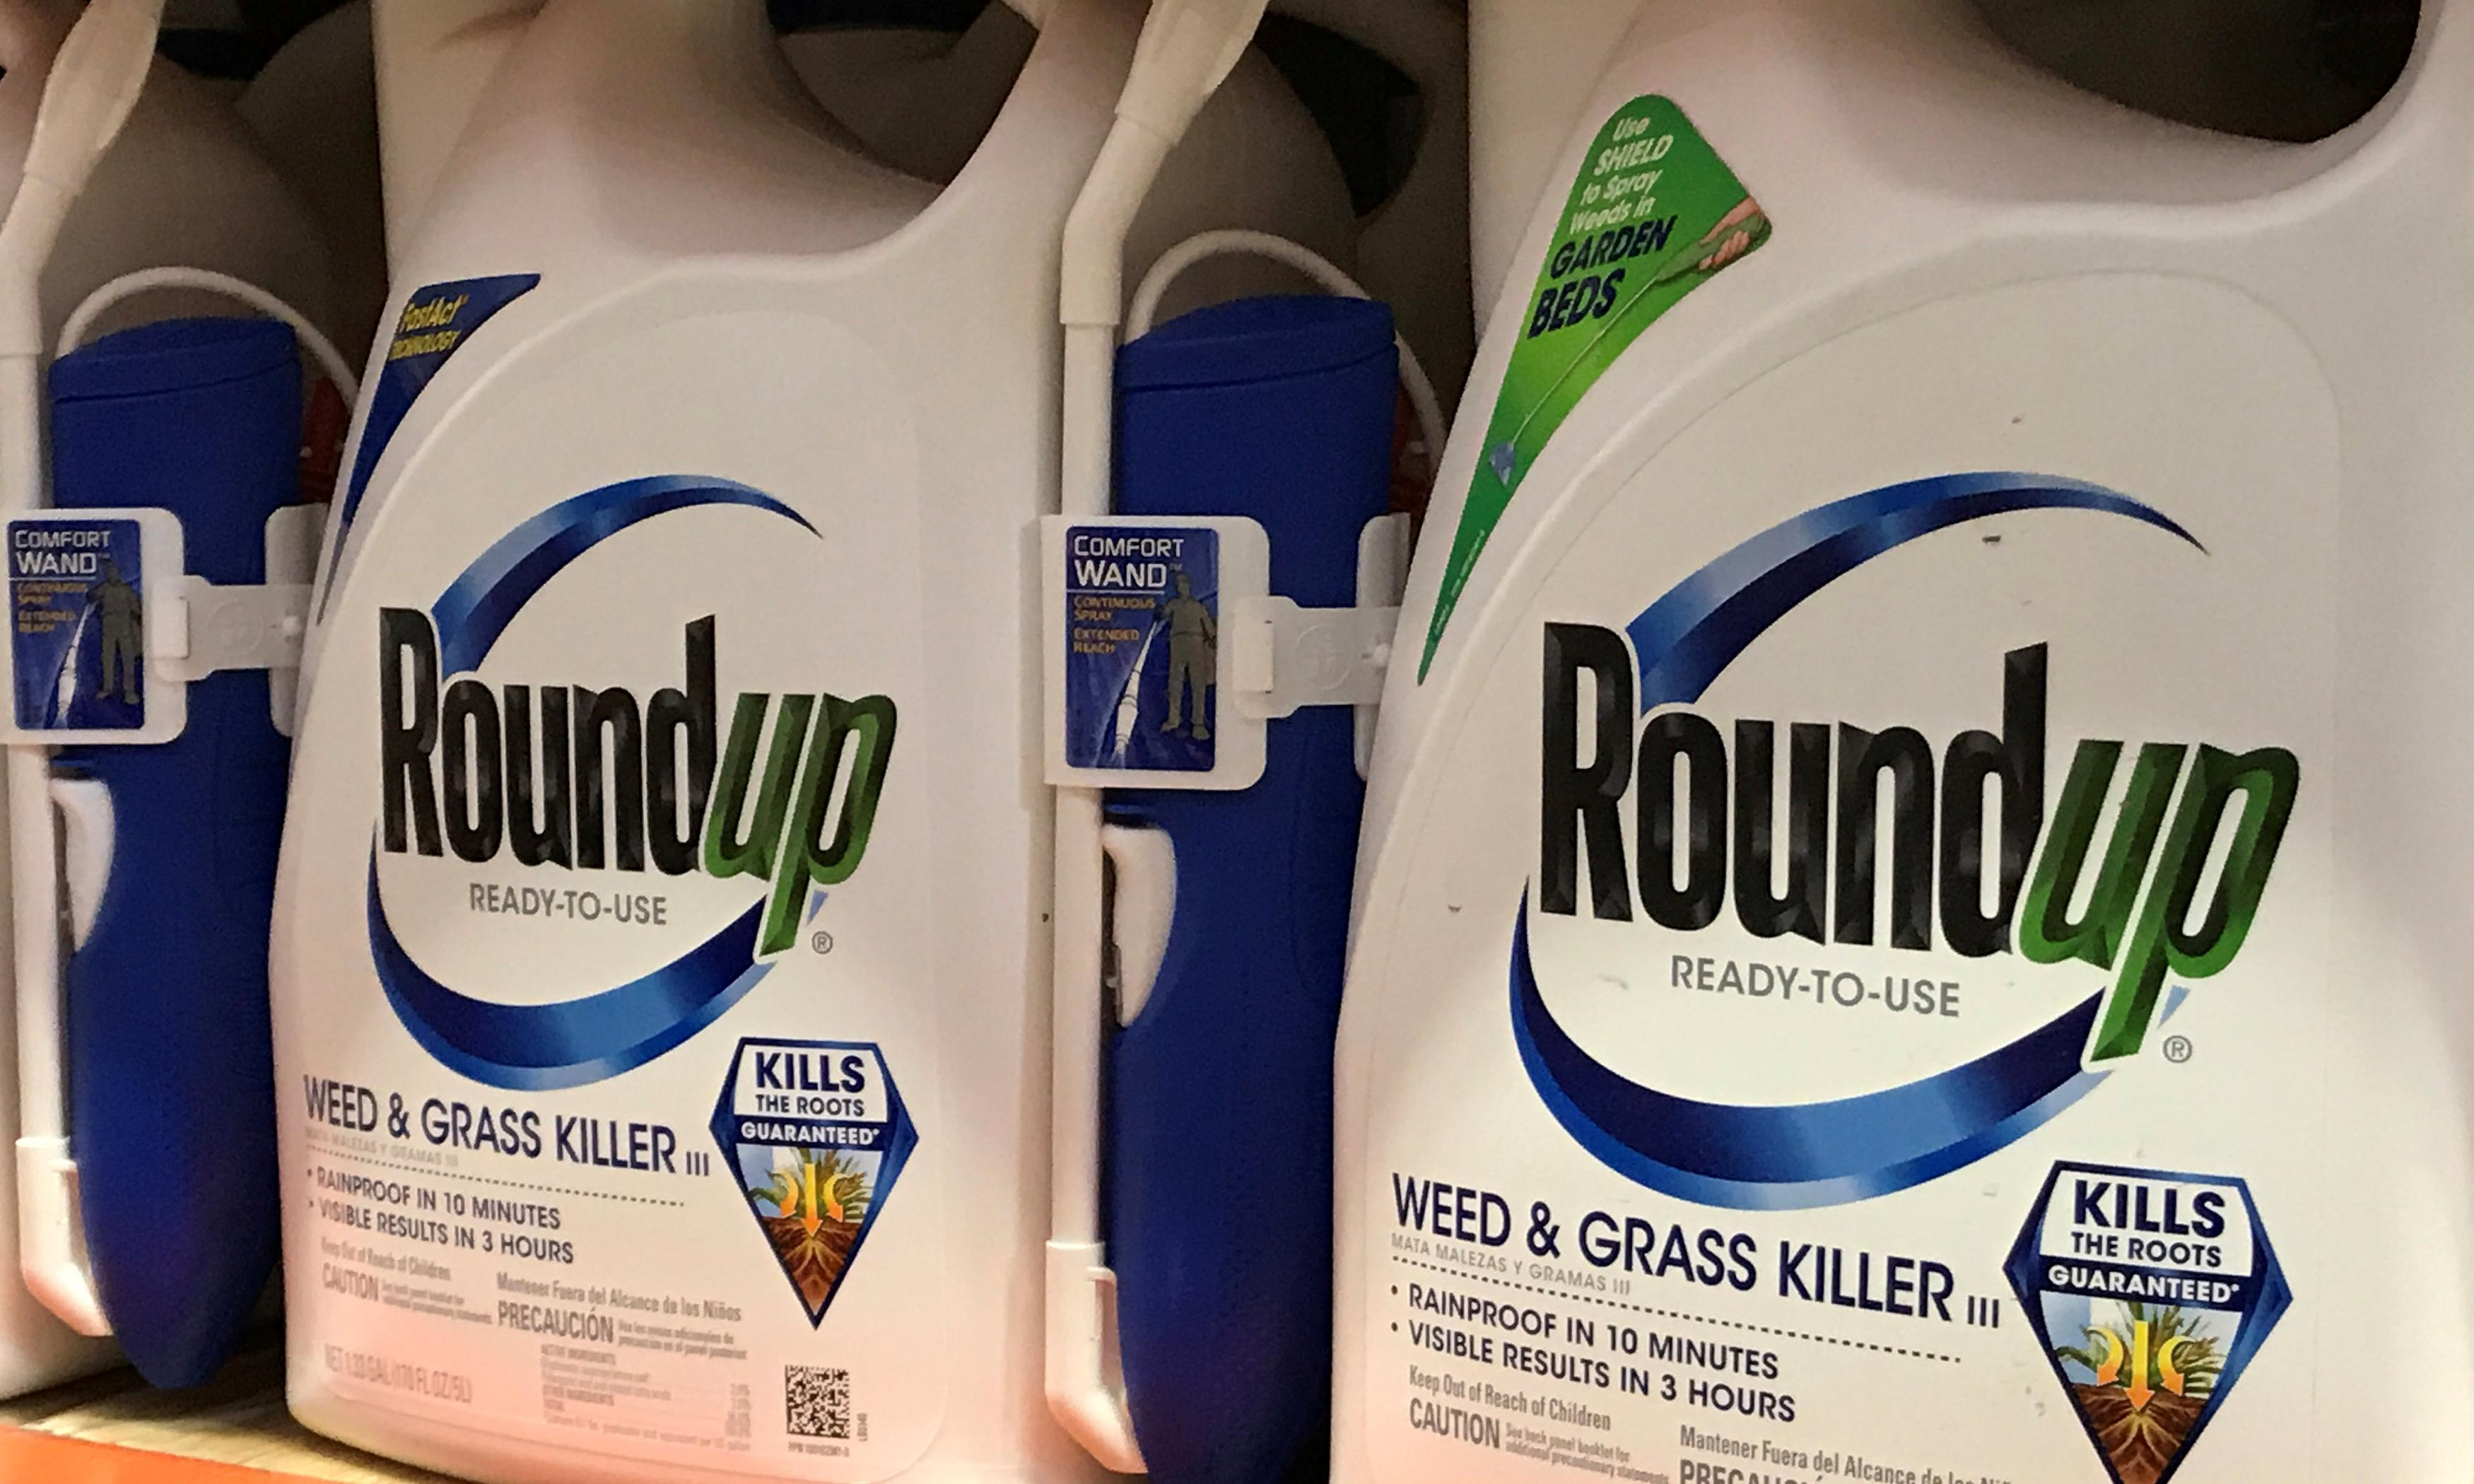 Formulations of glyphosate-based weedkillers are toxic, tests show